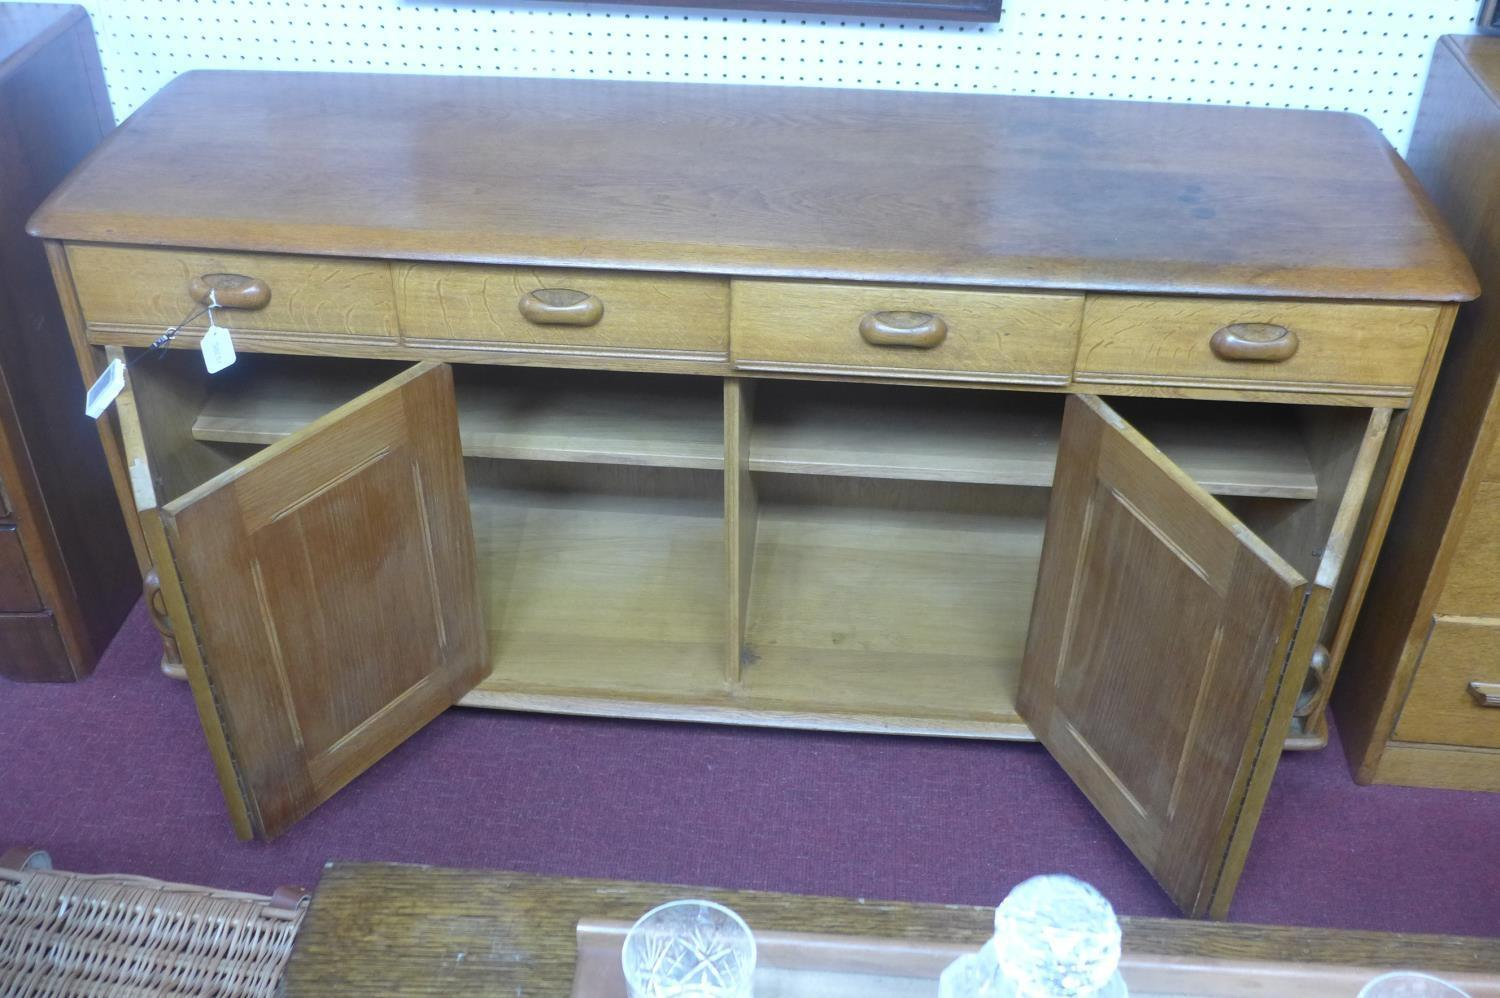 Lot 84 - A mid 20th century Ercol teak sideboard, with four short drawers and two pairs of double doors, on